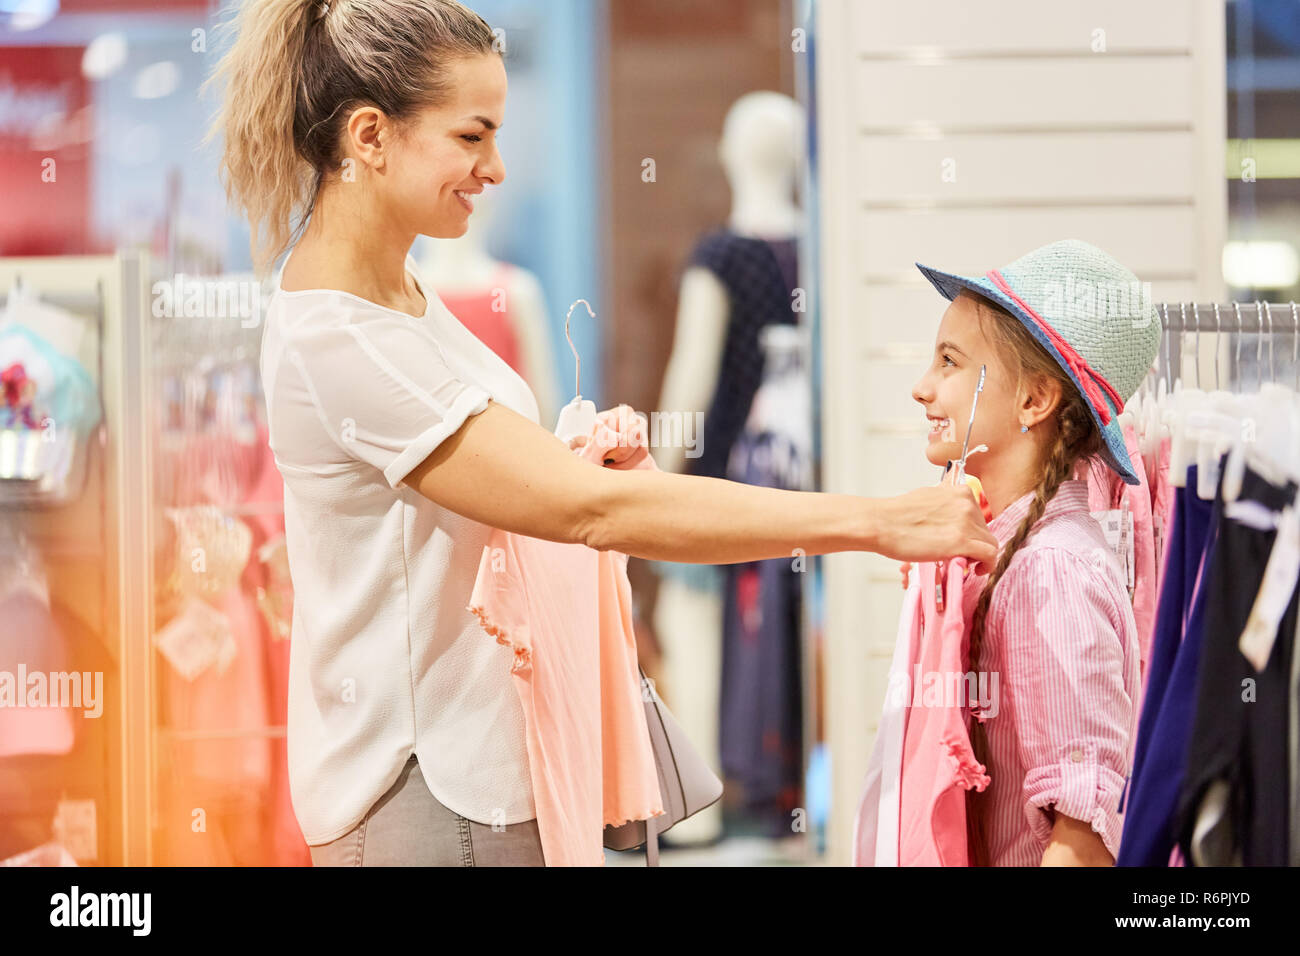 Mother choosing clothes for the daughter in a fashion